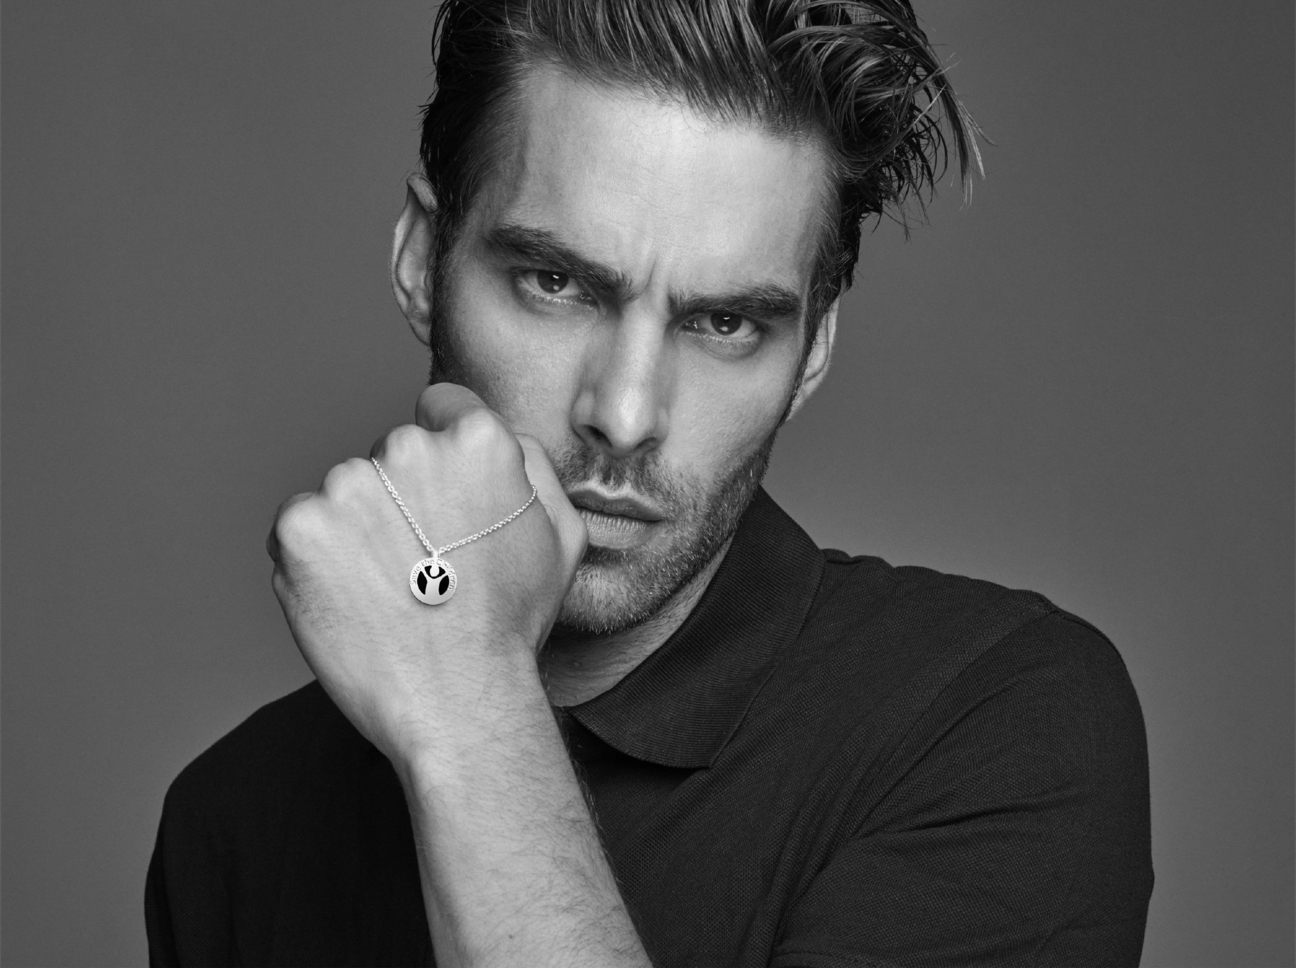 Bvlgari-Save-The-Children-Give-Hope-Jon Kortajarena.jpg